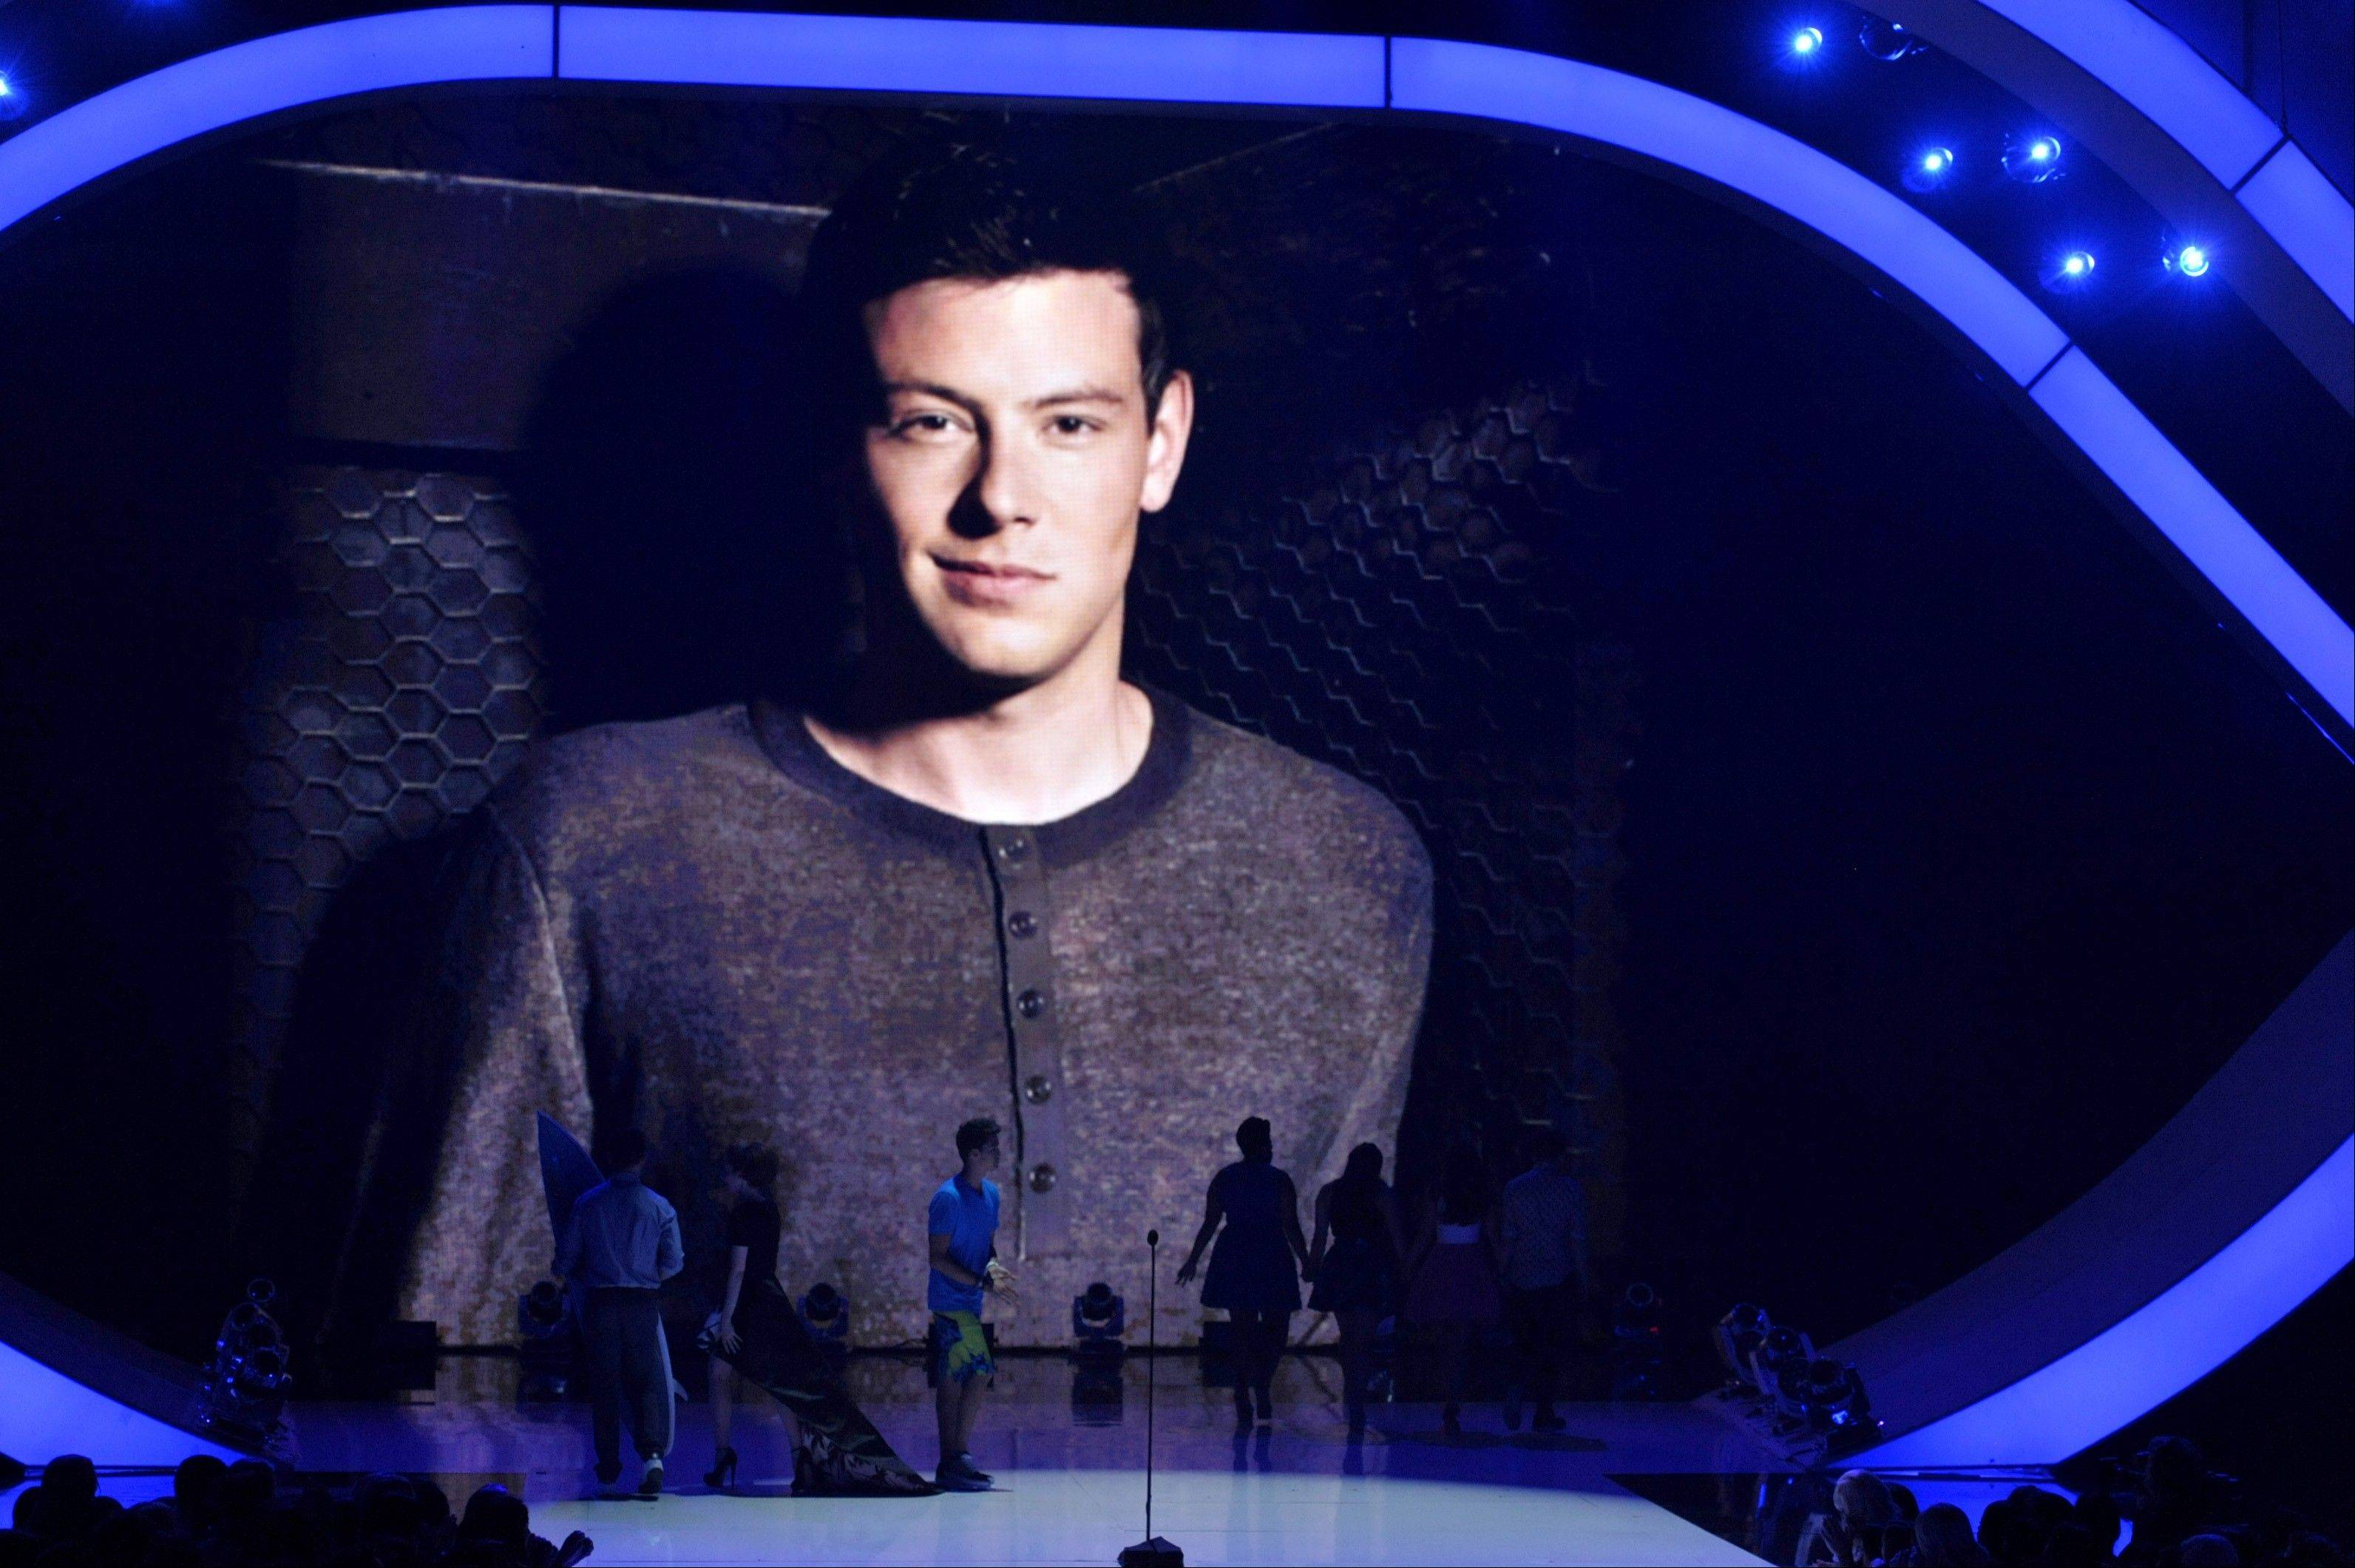 An image of the late Cory Monteith is pictured on screen at the Teen Choice Awards as a tribute.